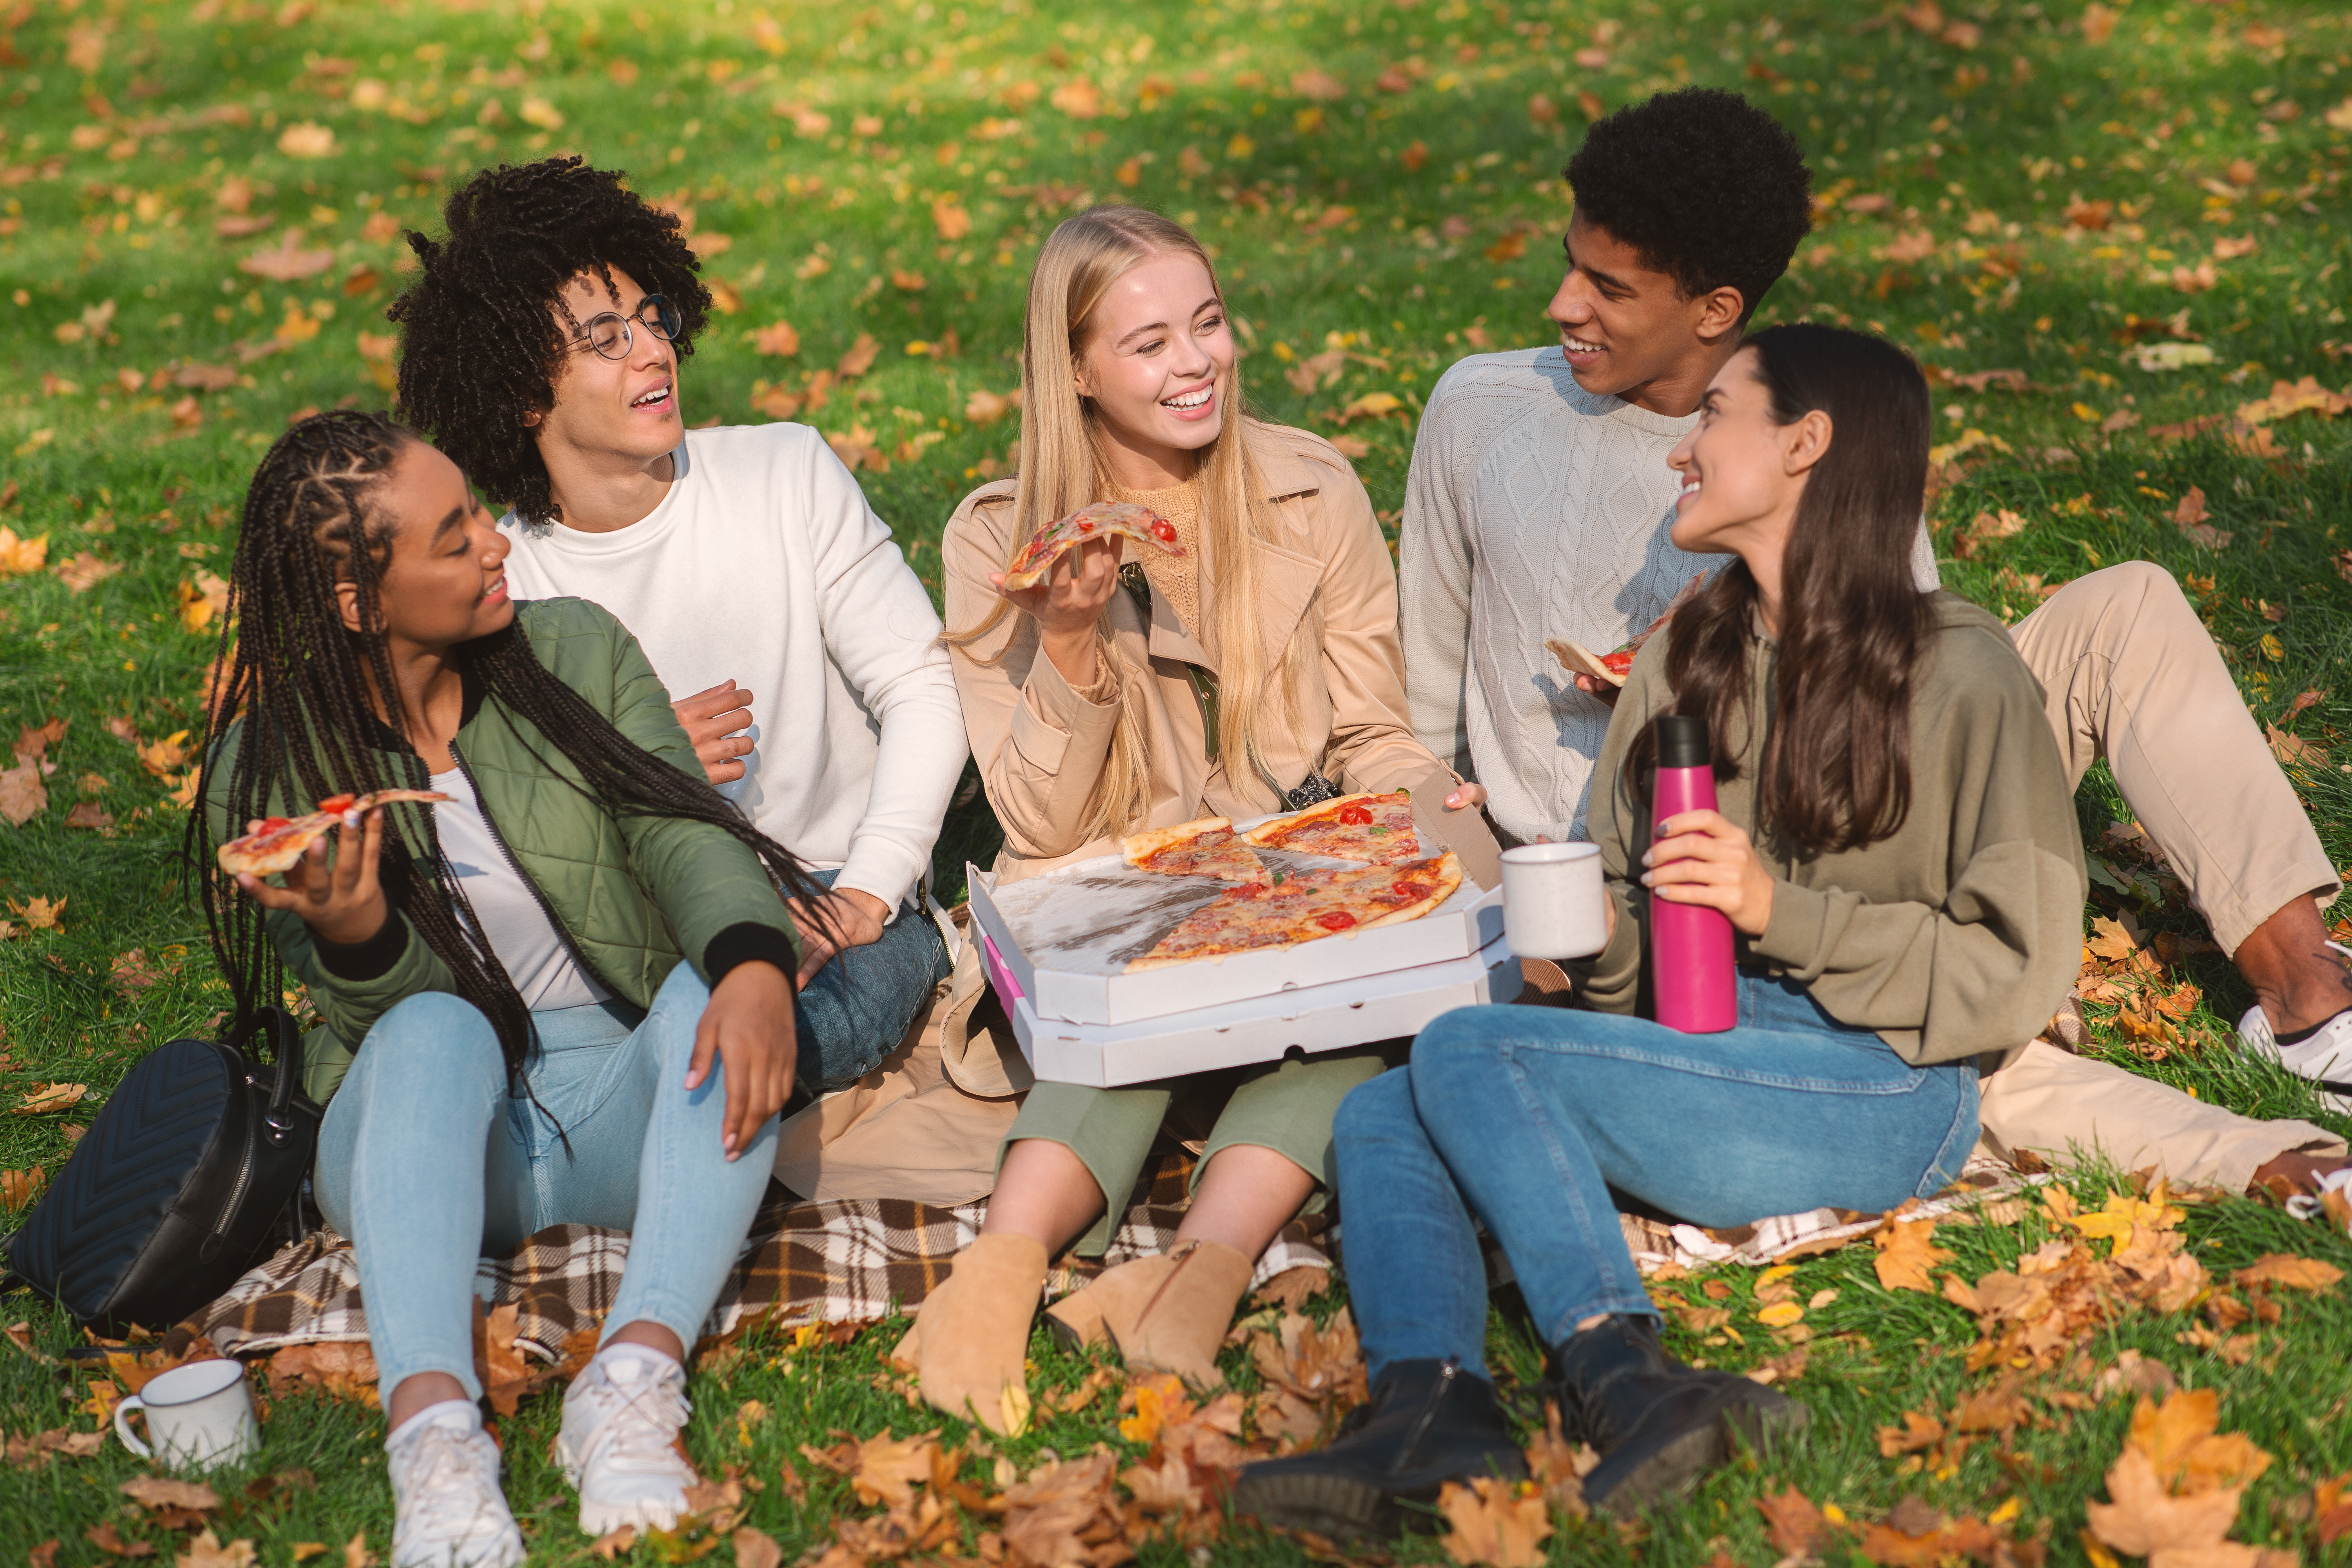 cheerful-friends-eating-pizza-at-public-